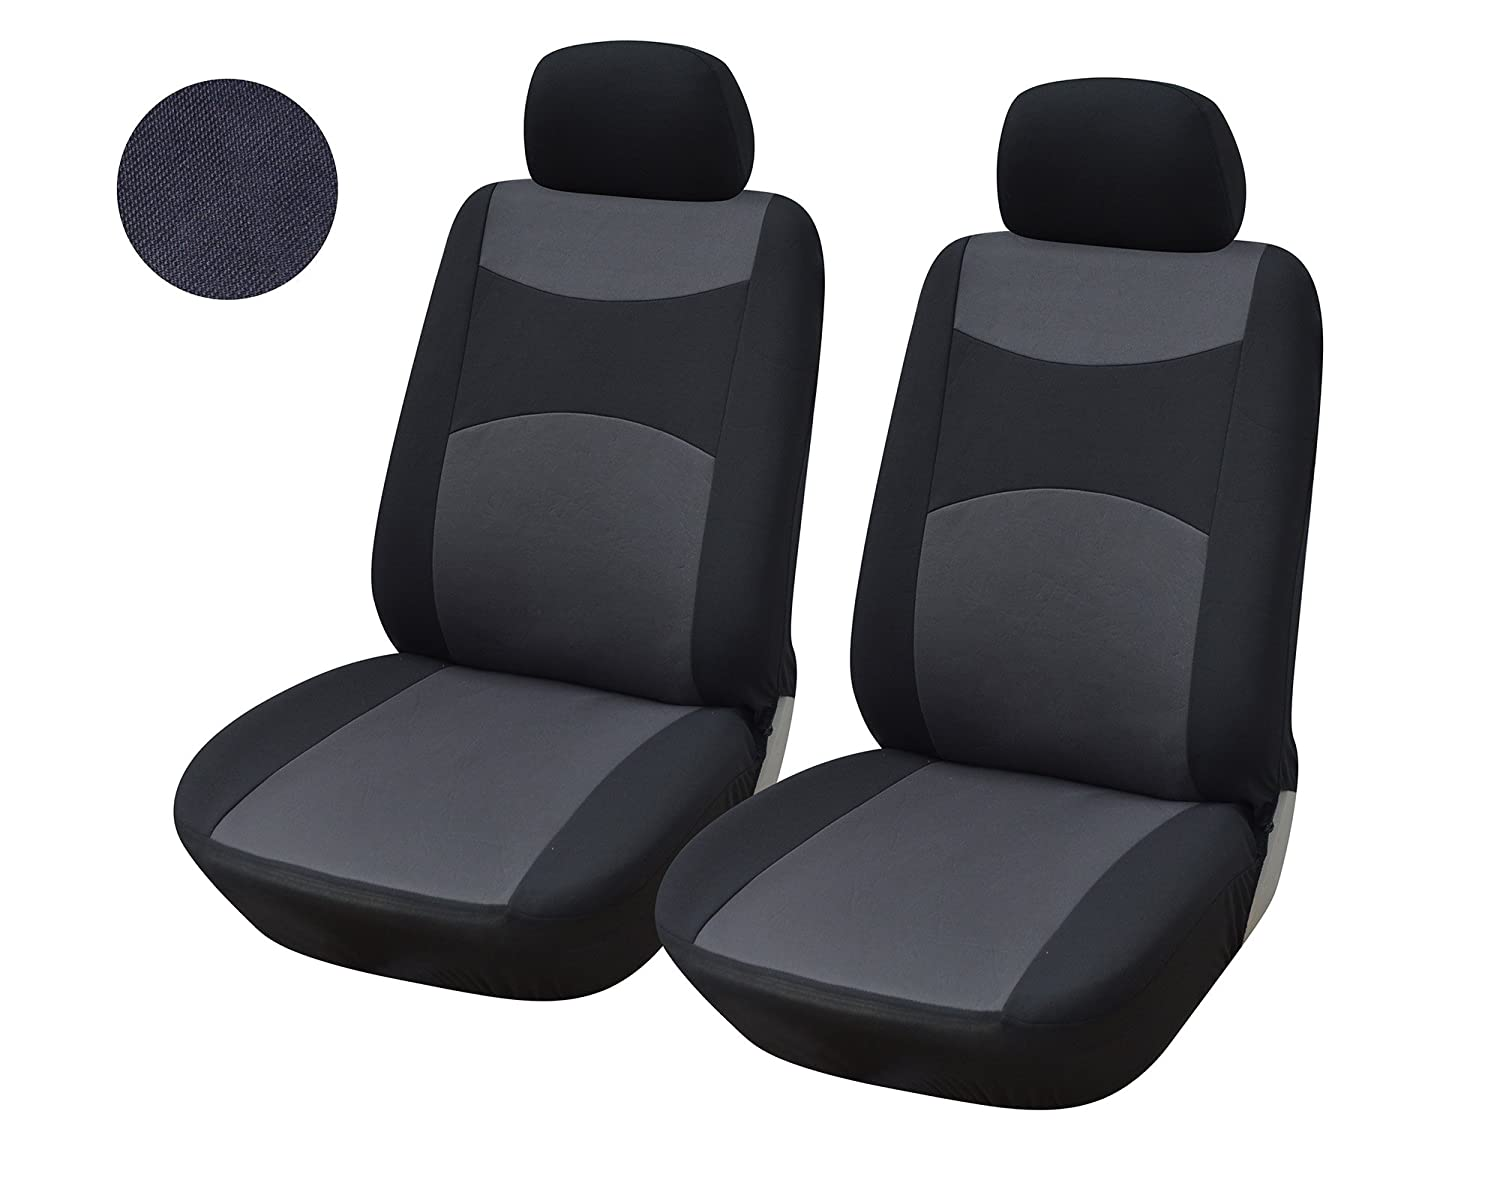 4PC Set Front Car Seat Covers Polyester Cloth For Nissan Altima Leaf Murano Note Rogue Sentra Versa Black And Gray Two Tone Color 77F160 BK Automotive